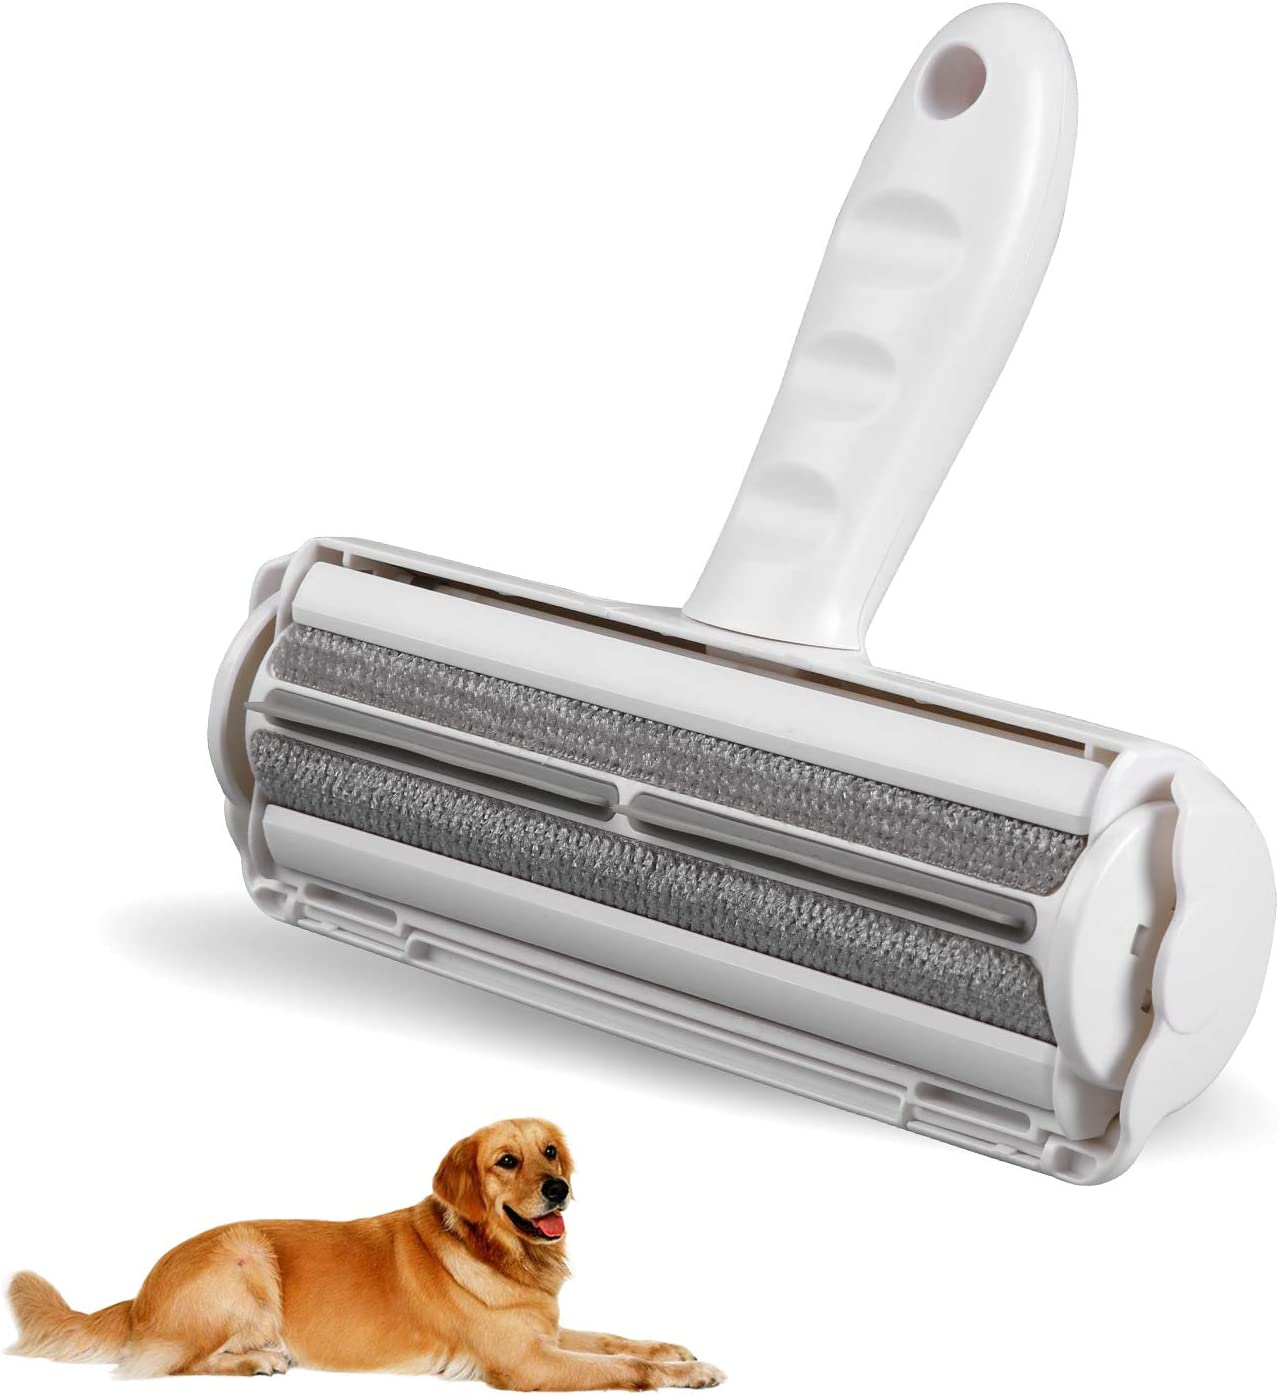 Loongty Upgrade Pet Hair Remover Roller, Lint Remover Roller, Dog & Cat Fur Remover from Furniture and Clothing - Efficient Animal Hair Remover Tool, Washable.